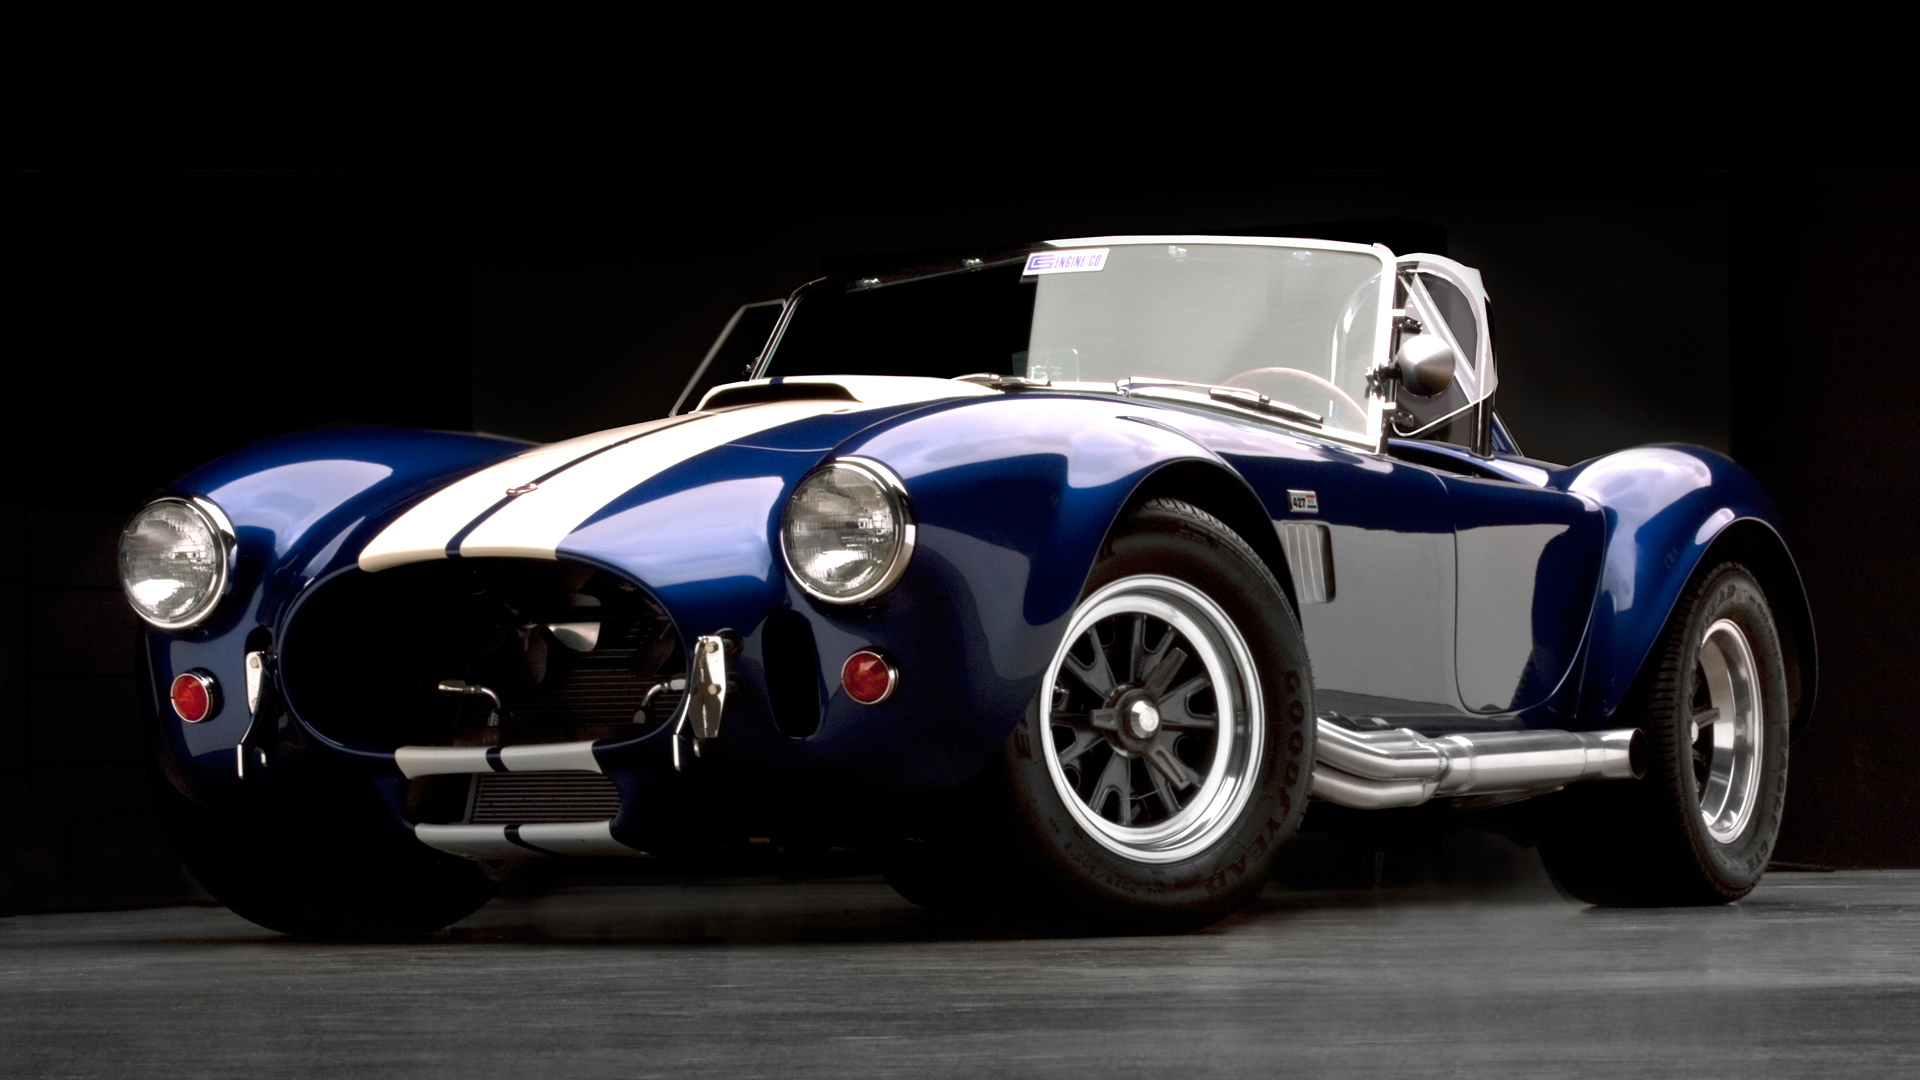 Pre Owned Cars >> AC Shelby Cobra - Classic Cars